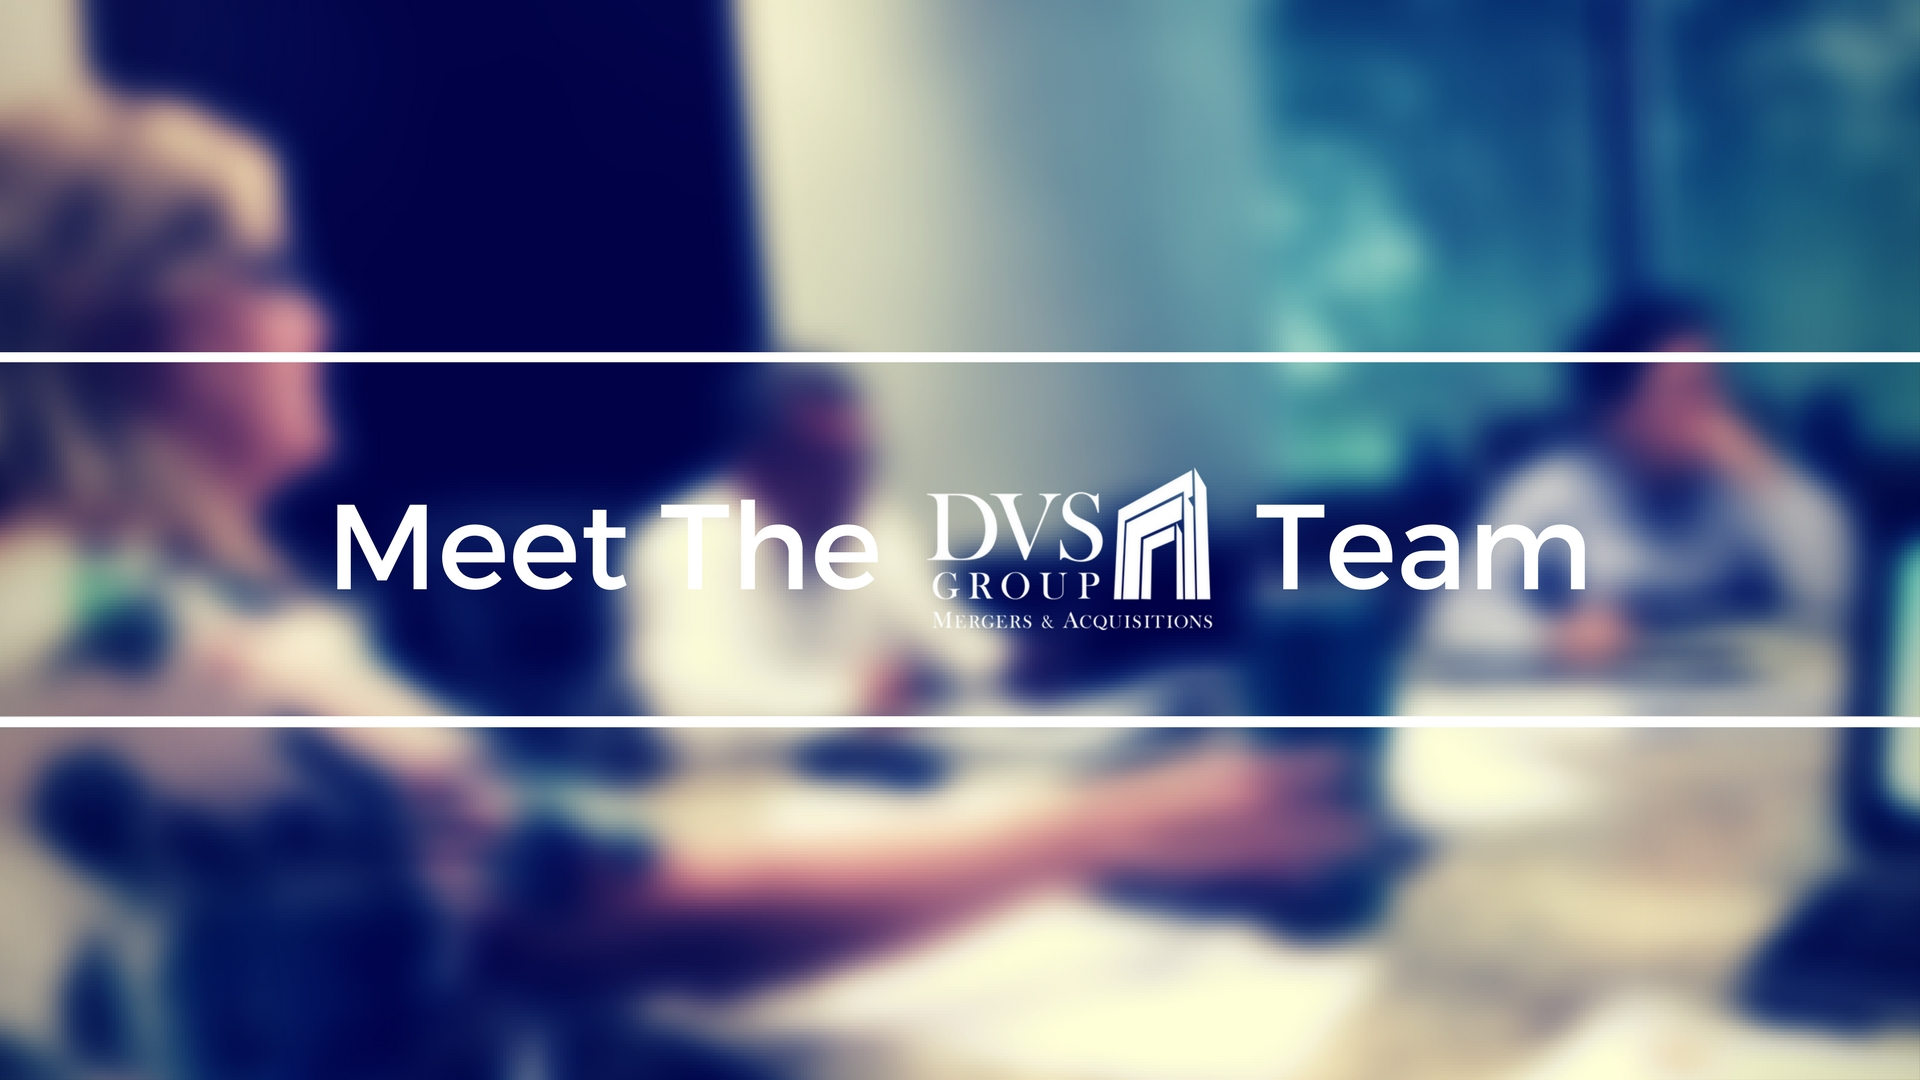 The DVS Group Team